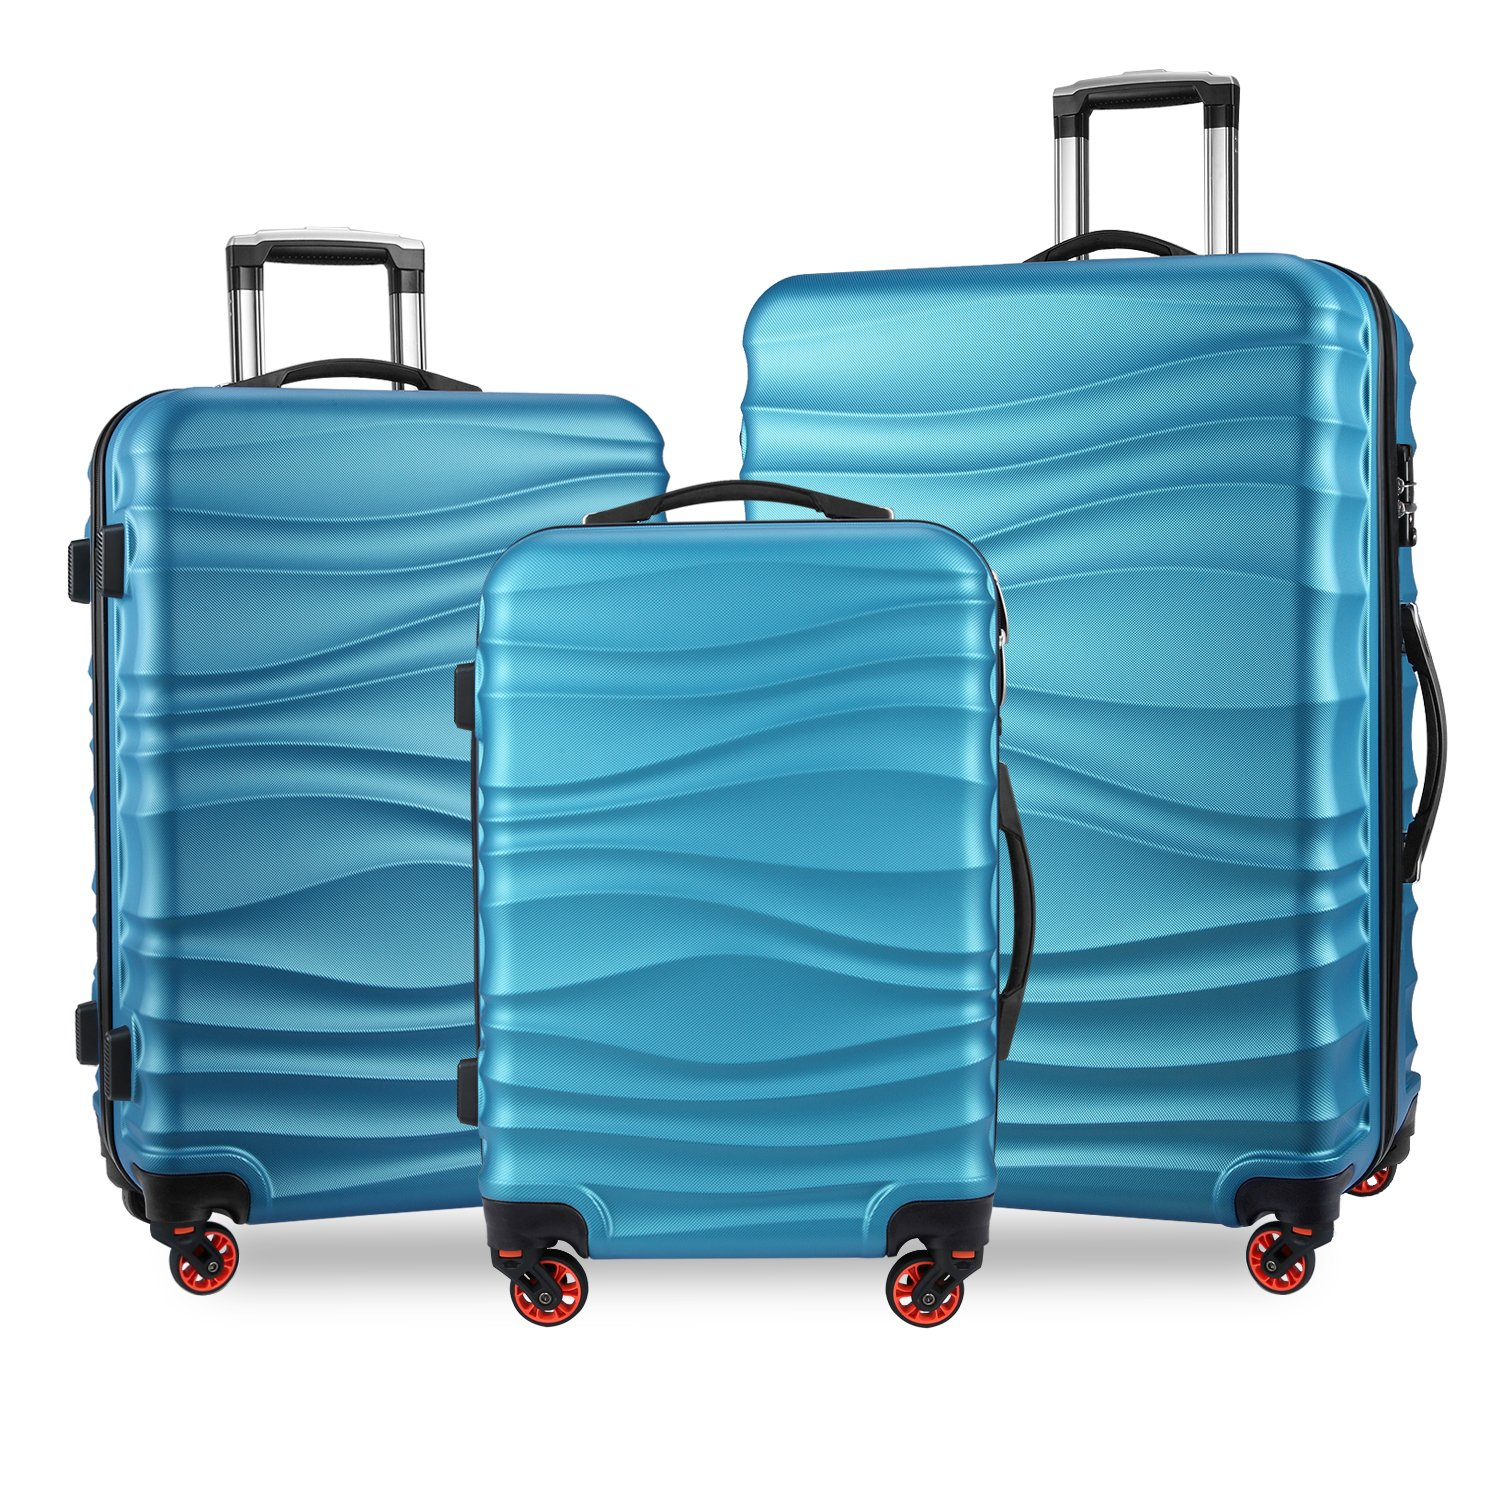 YUTING Luggage Expandable Suitcase 3 Piece Set with TSA Lock Spinner 20in24in28in